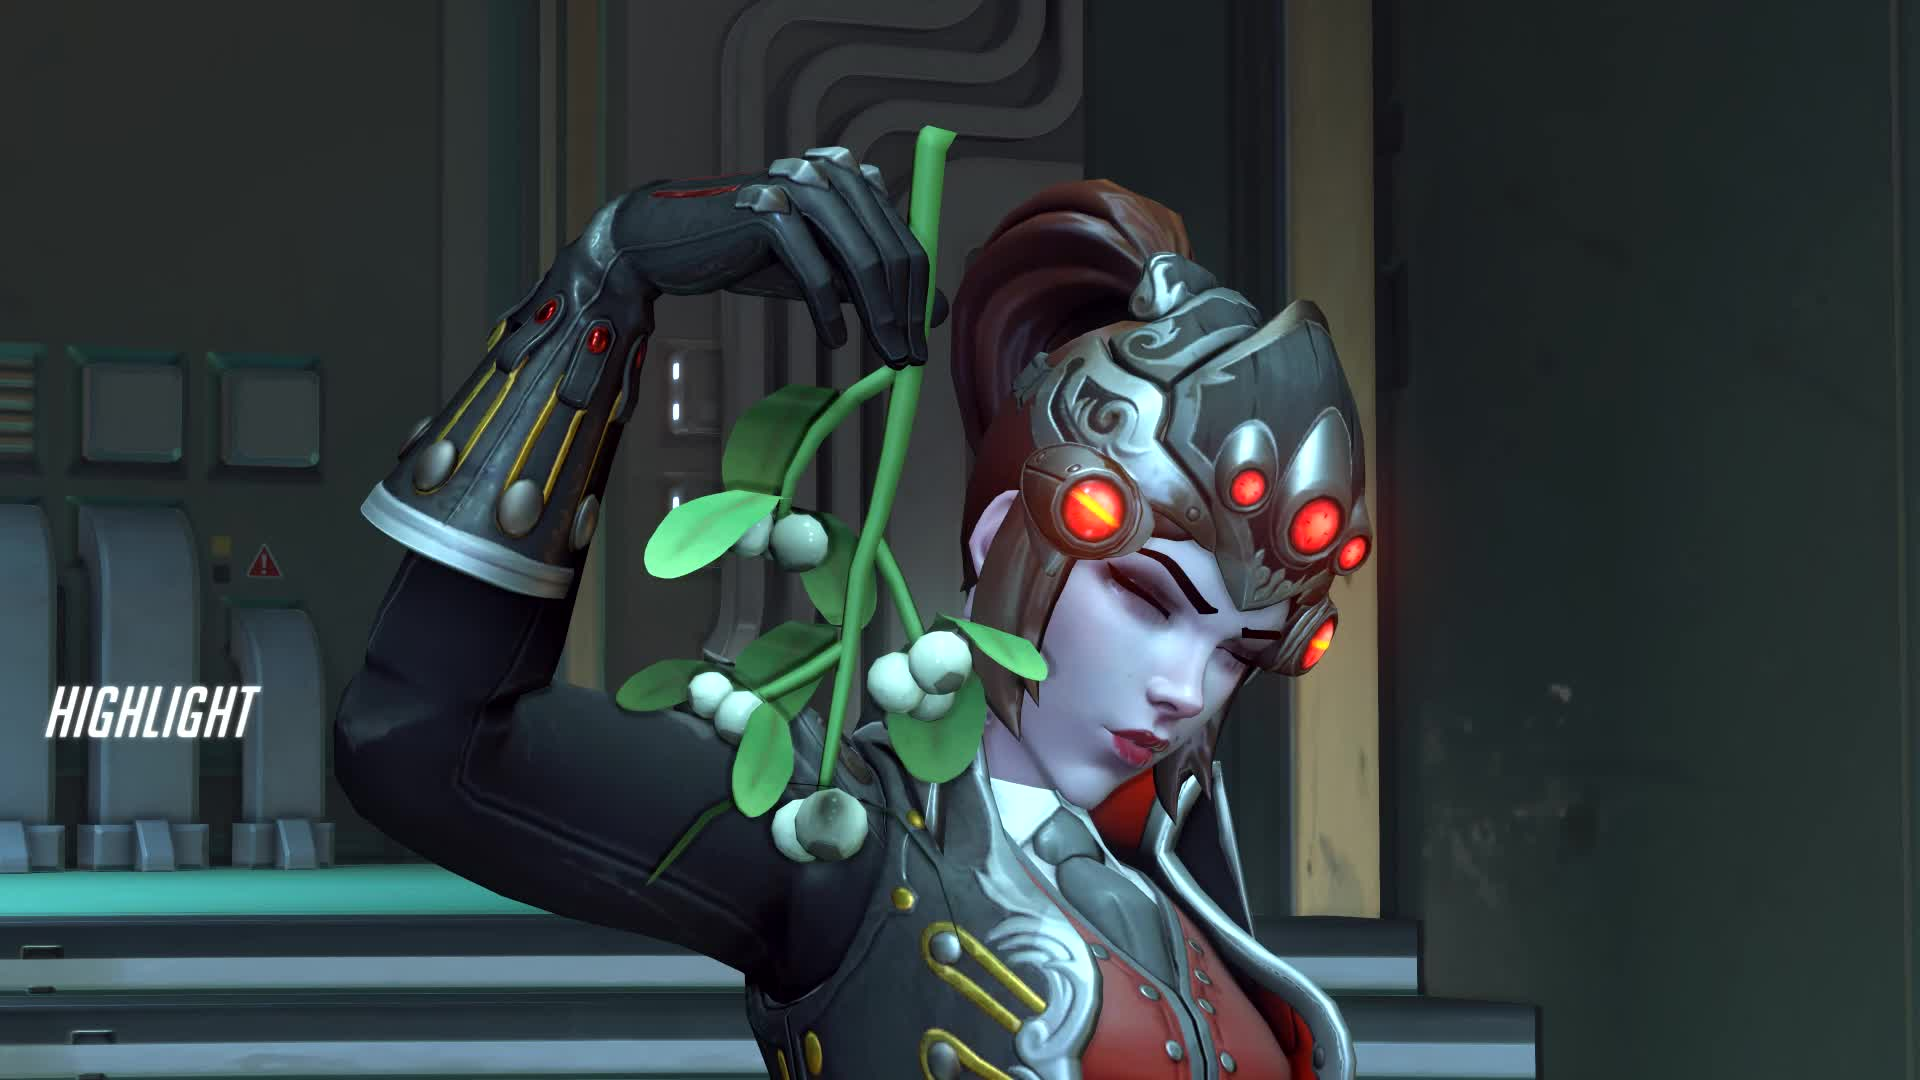 overwatch, widowmaker, grapple memes active GIFs